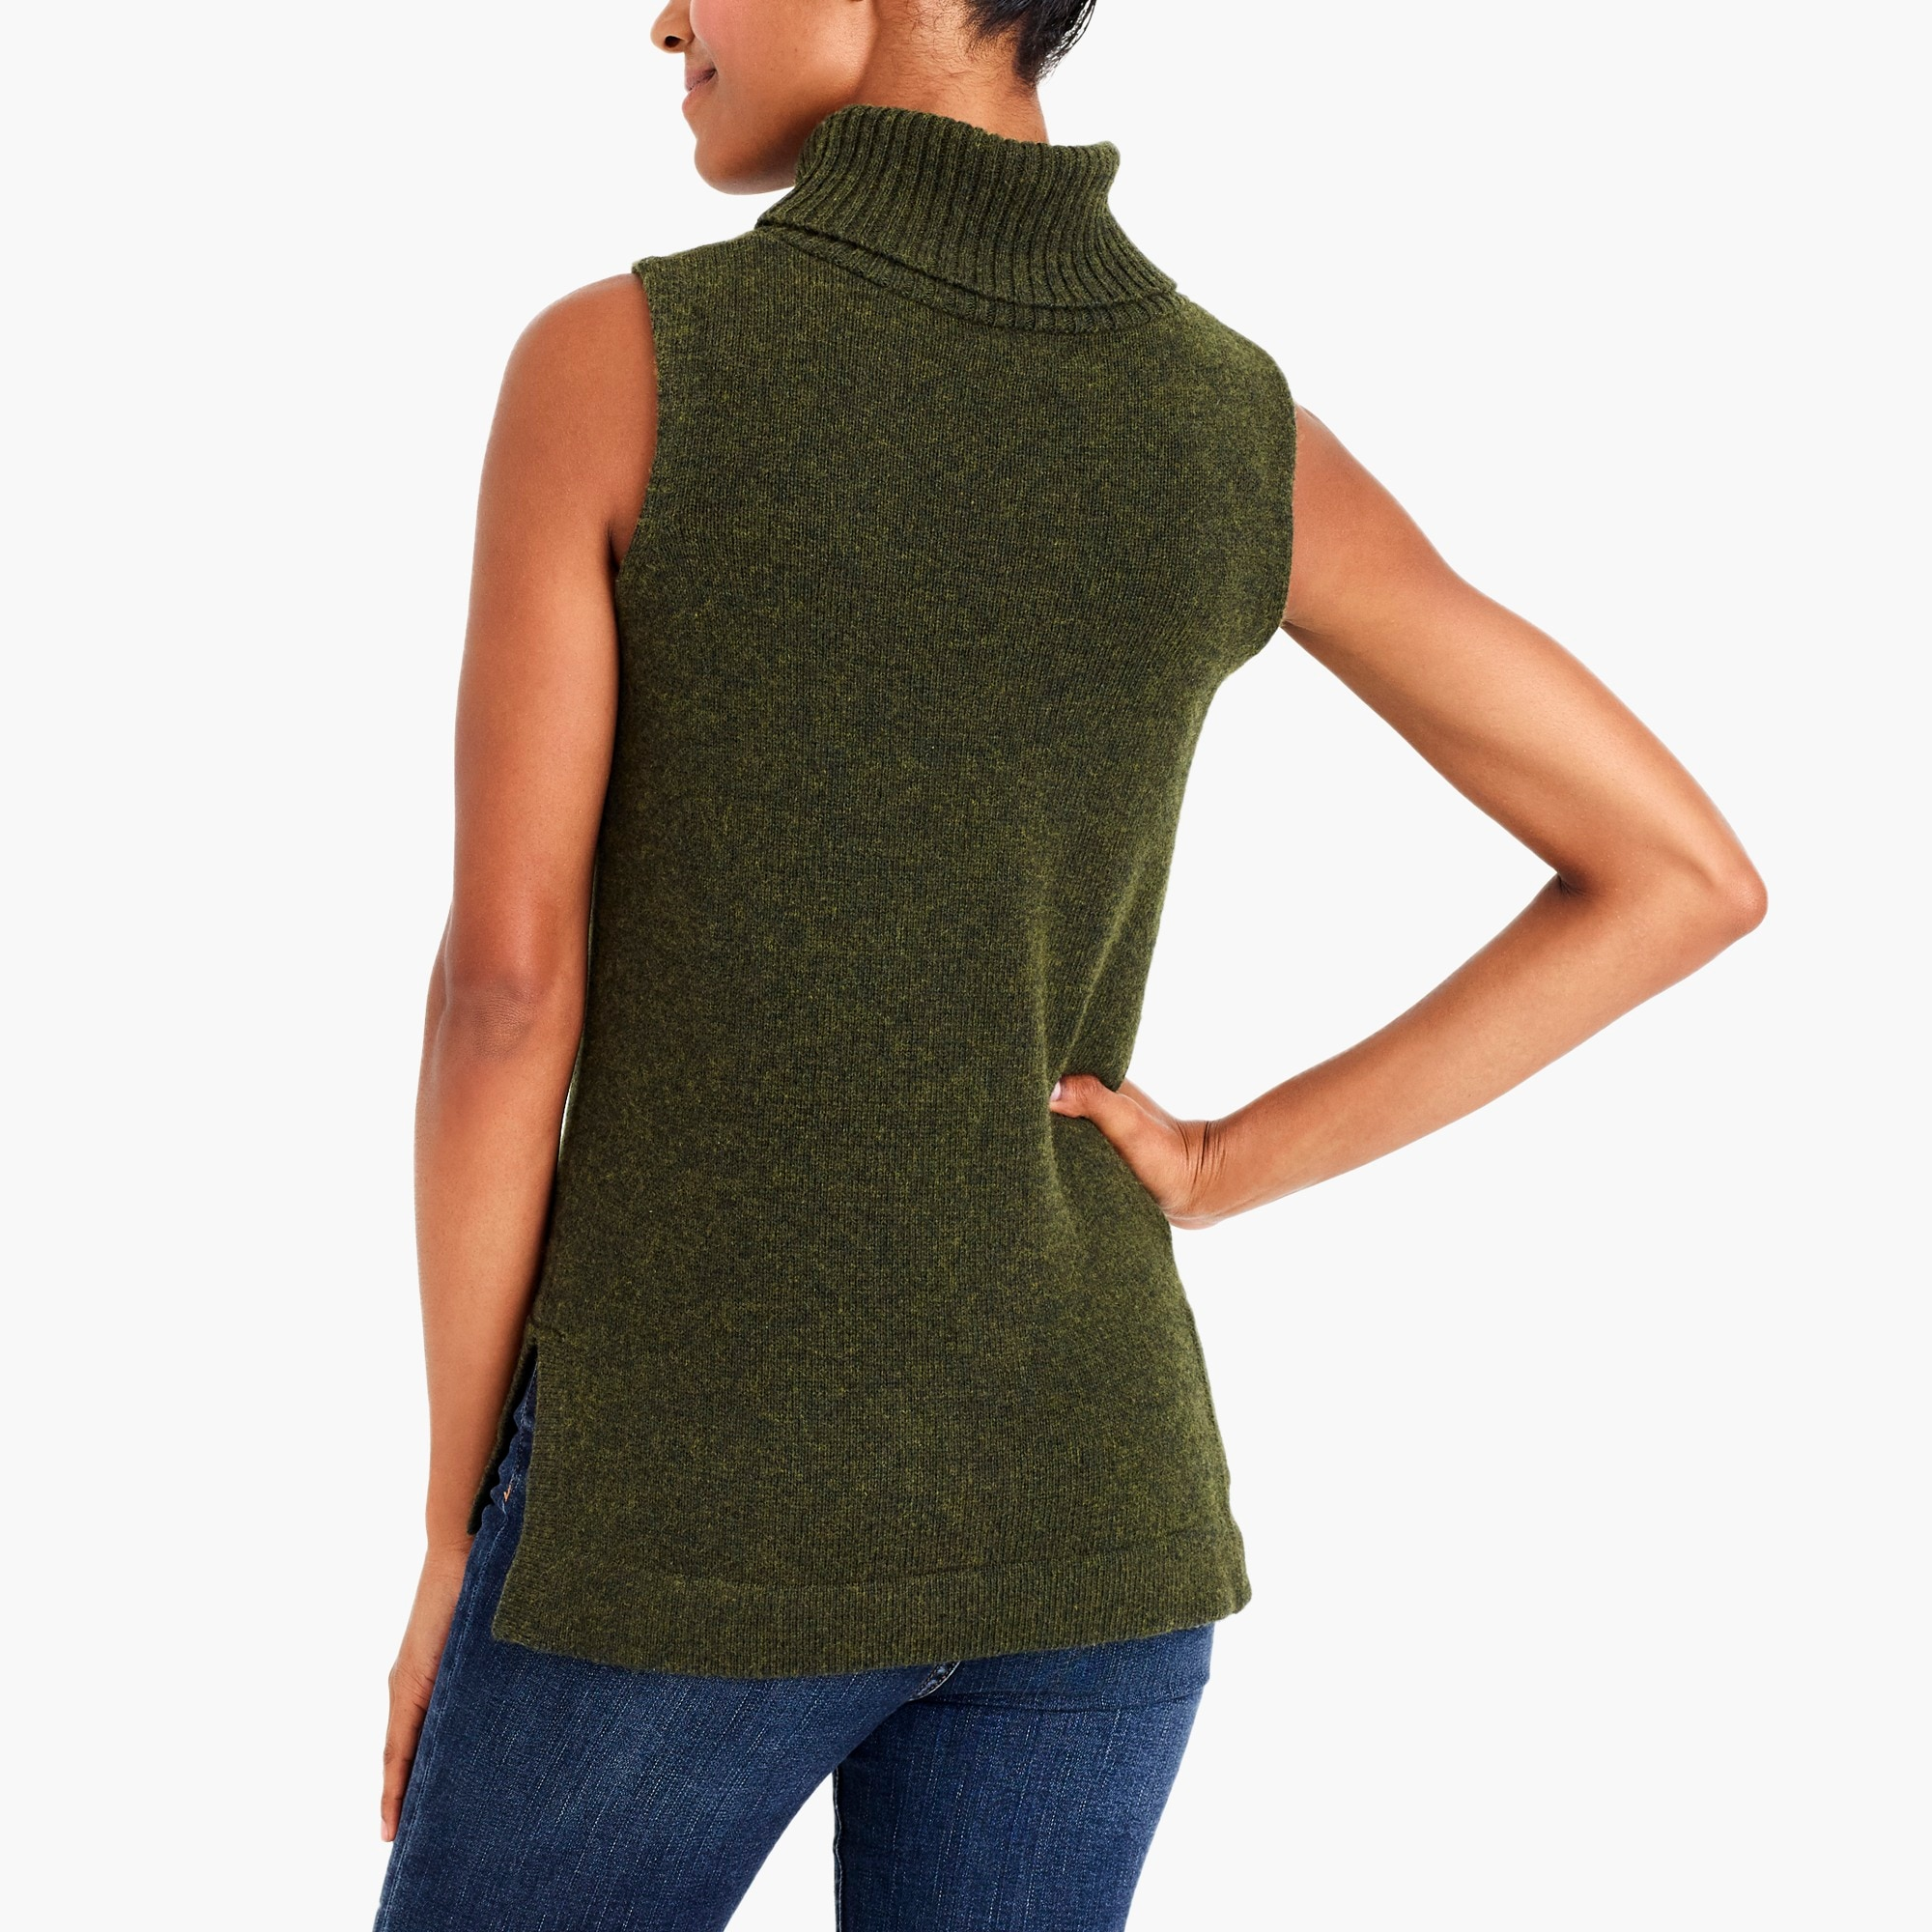 Image 2 for Turtleneck sweater tank top